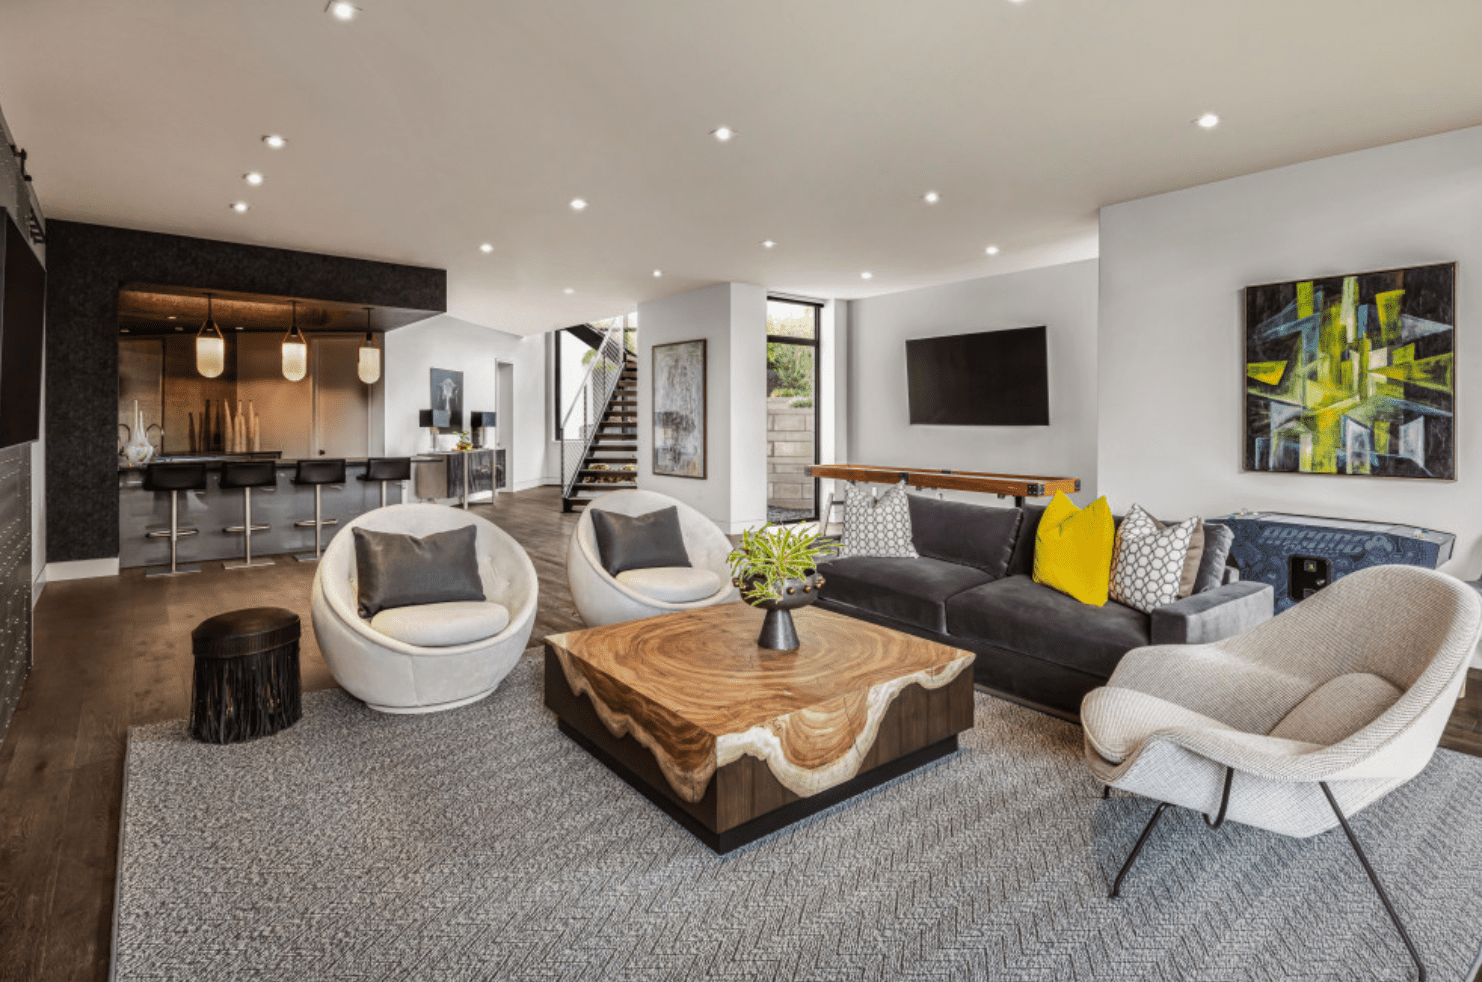 A spacious basement lined with recessed lighting